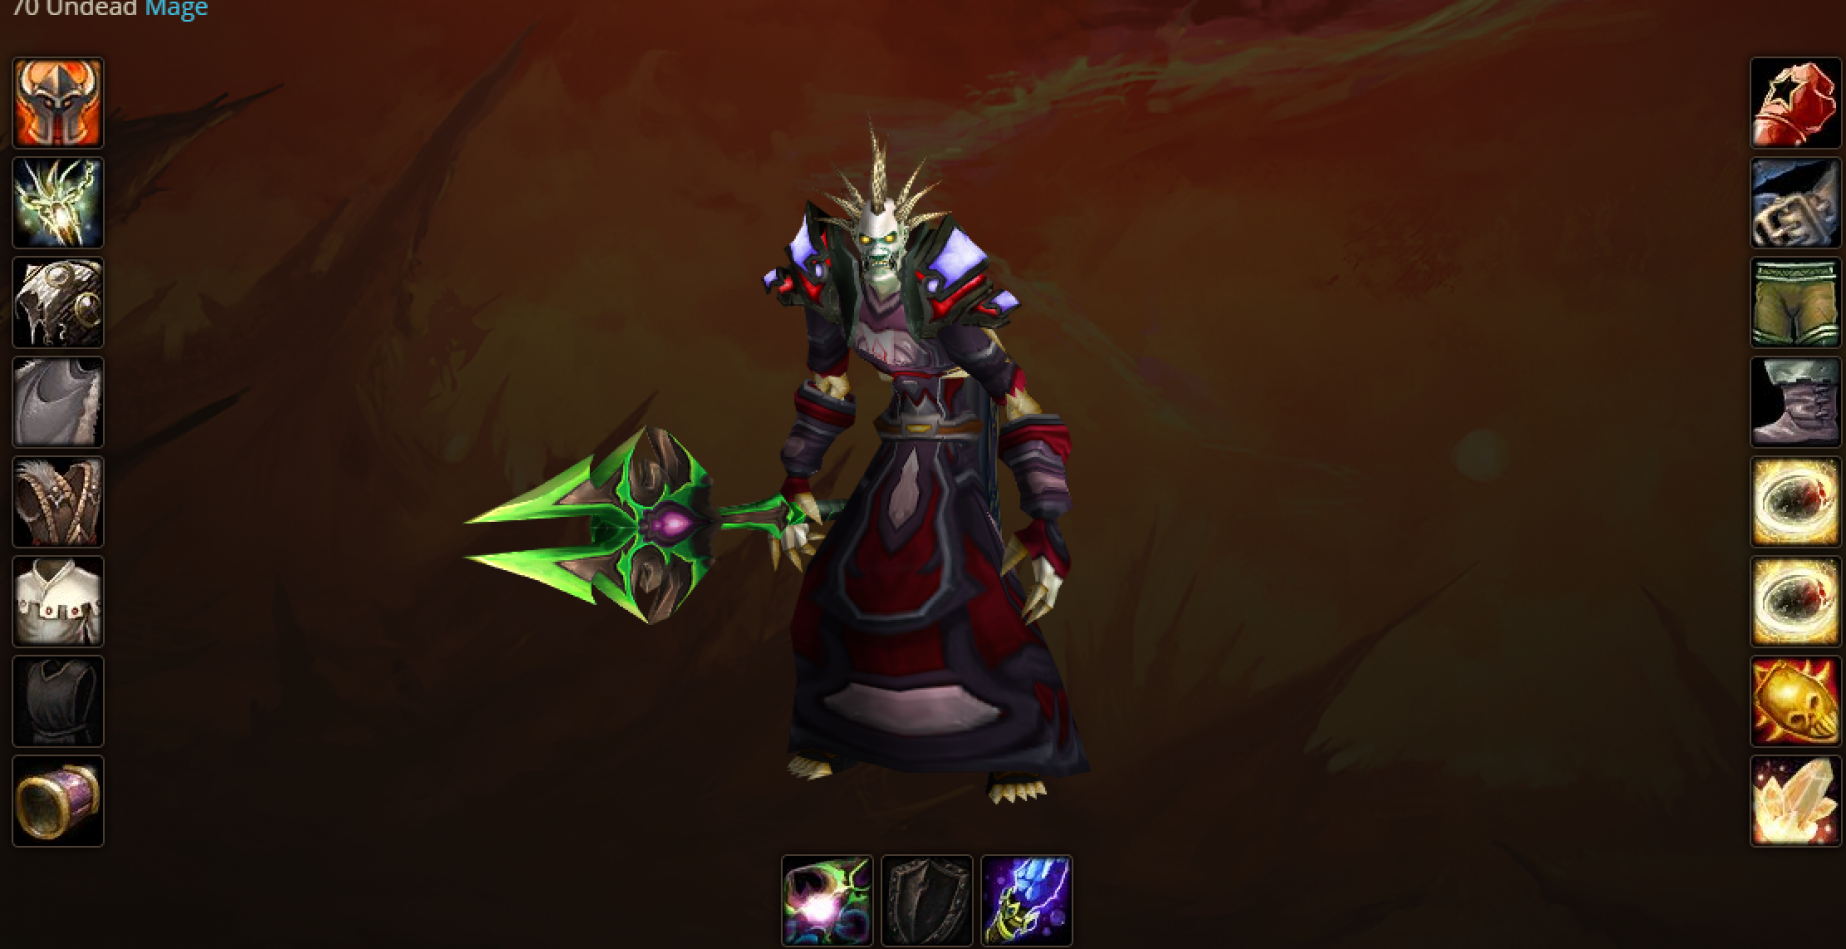 Undead male mage Endless